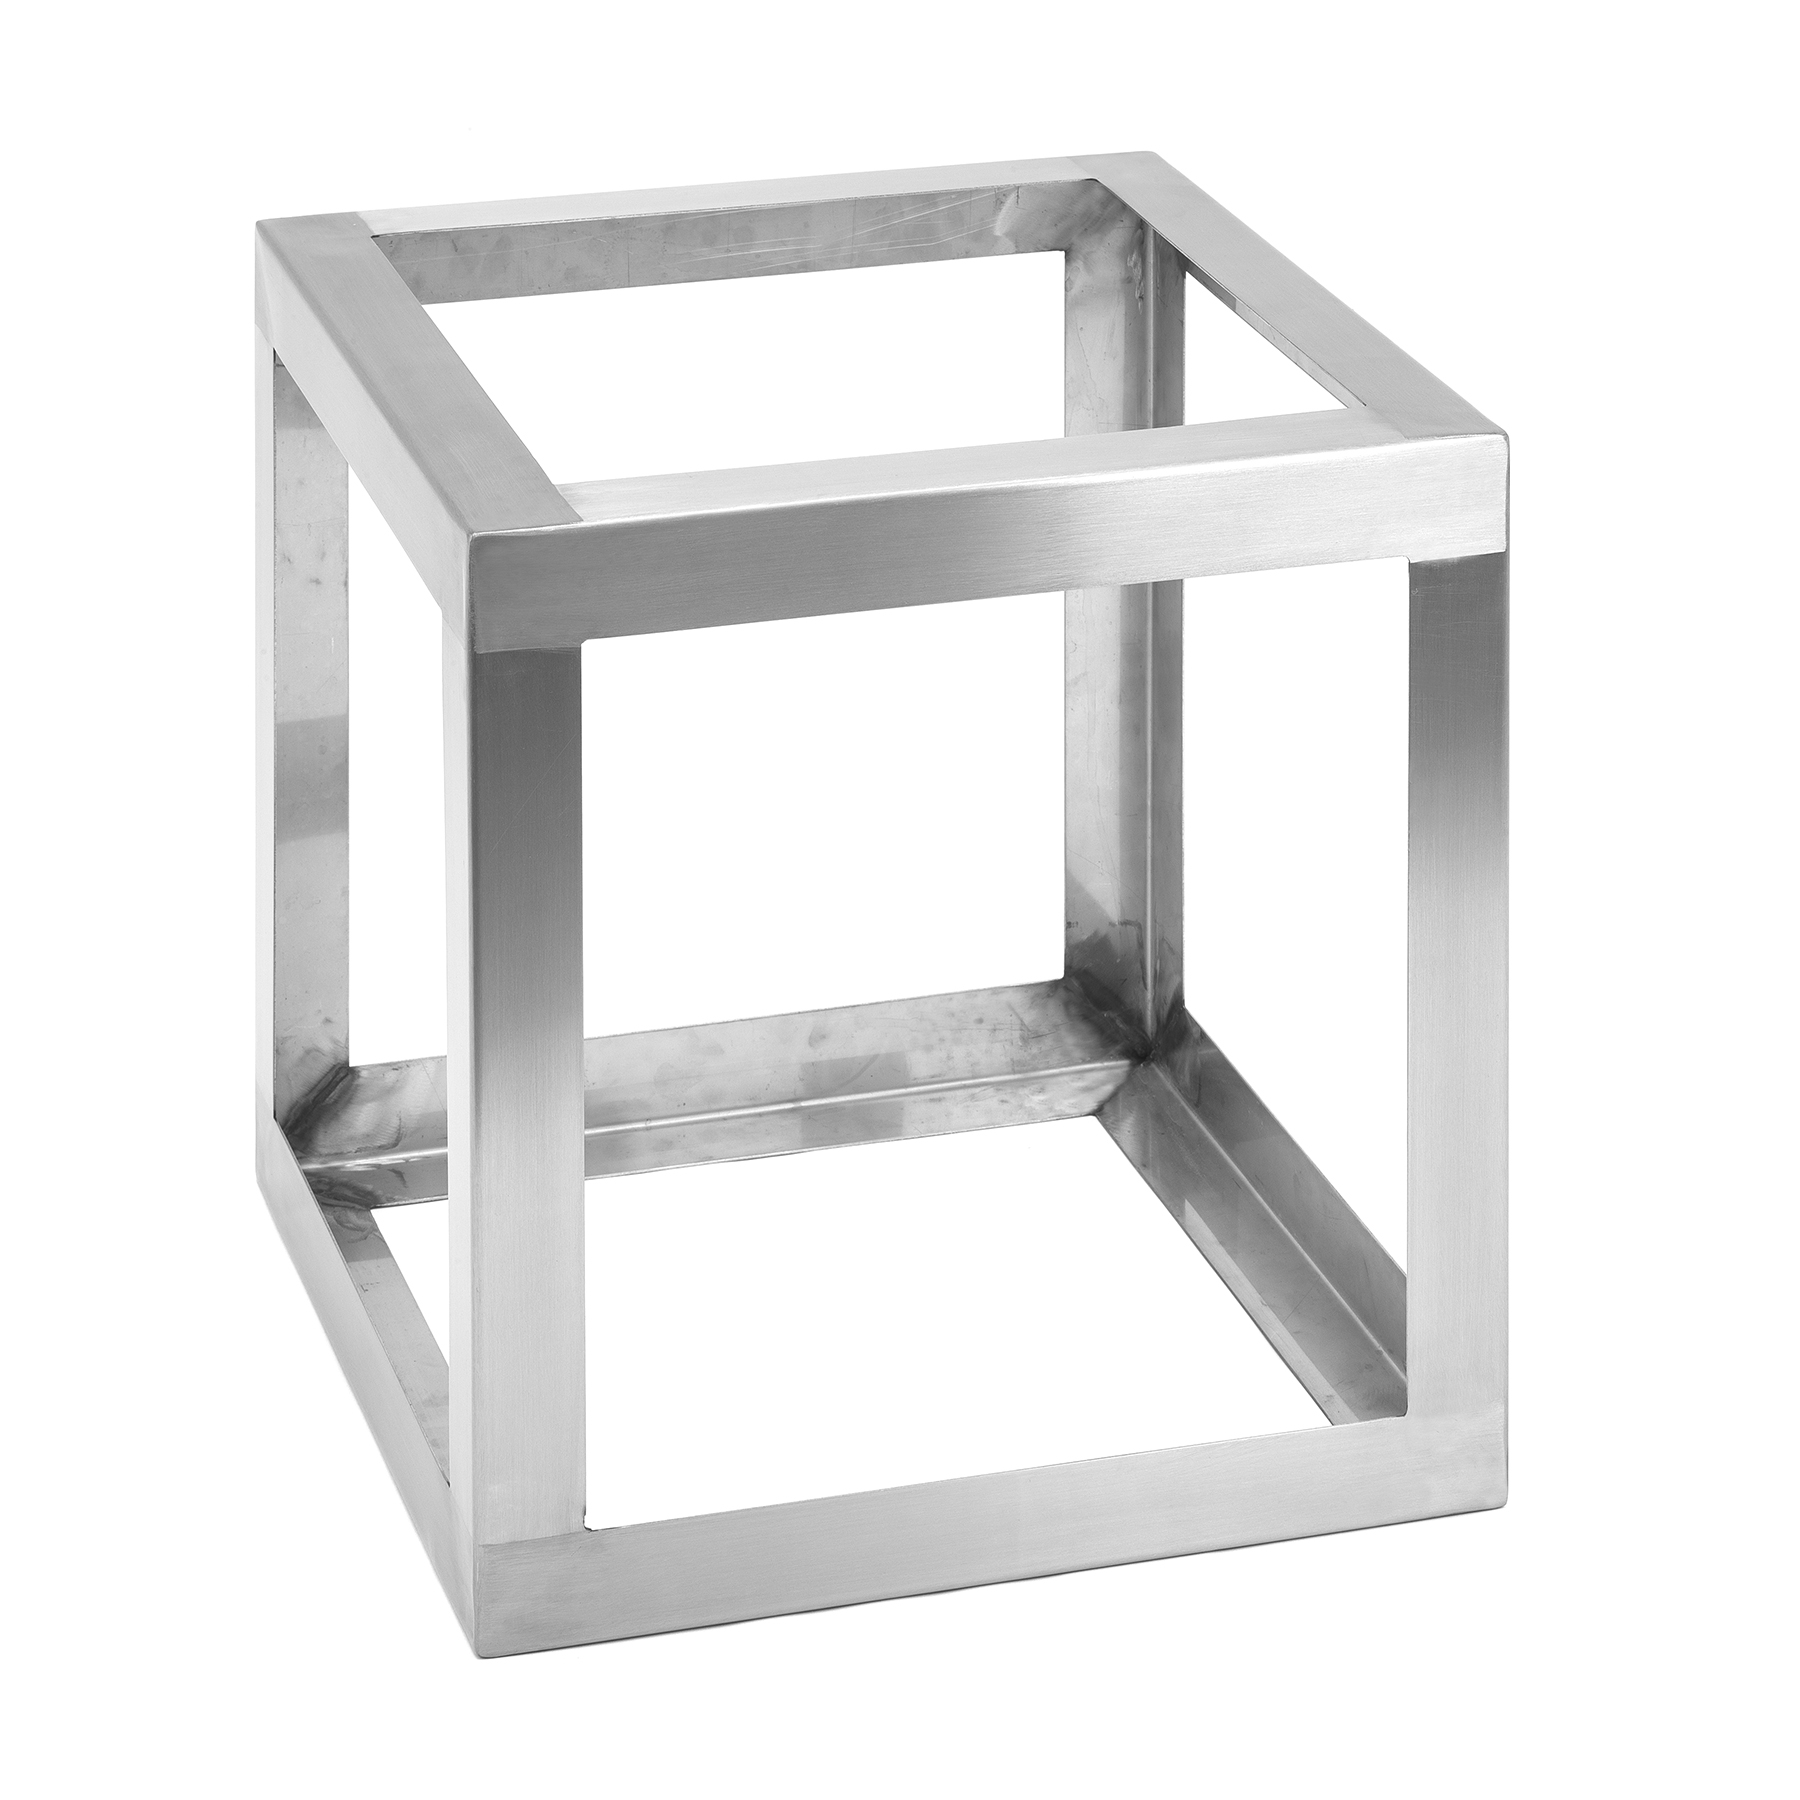 Stainless Steel Frame Planters quality planters by Europlanters